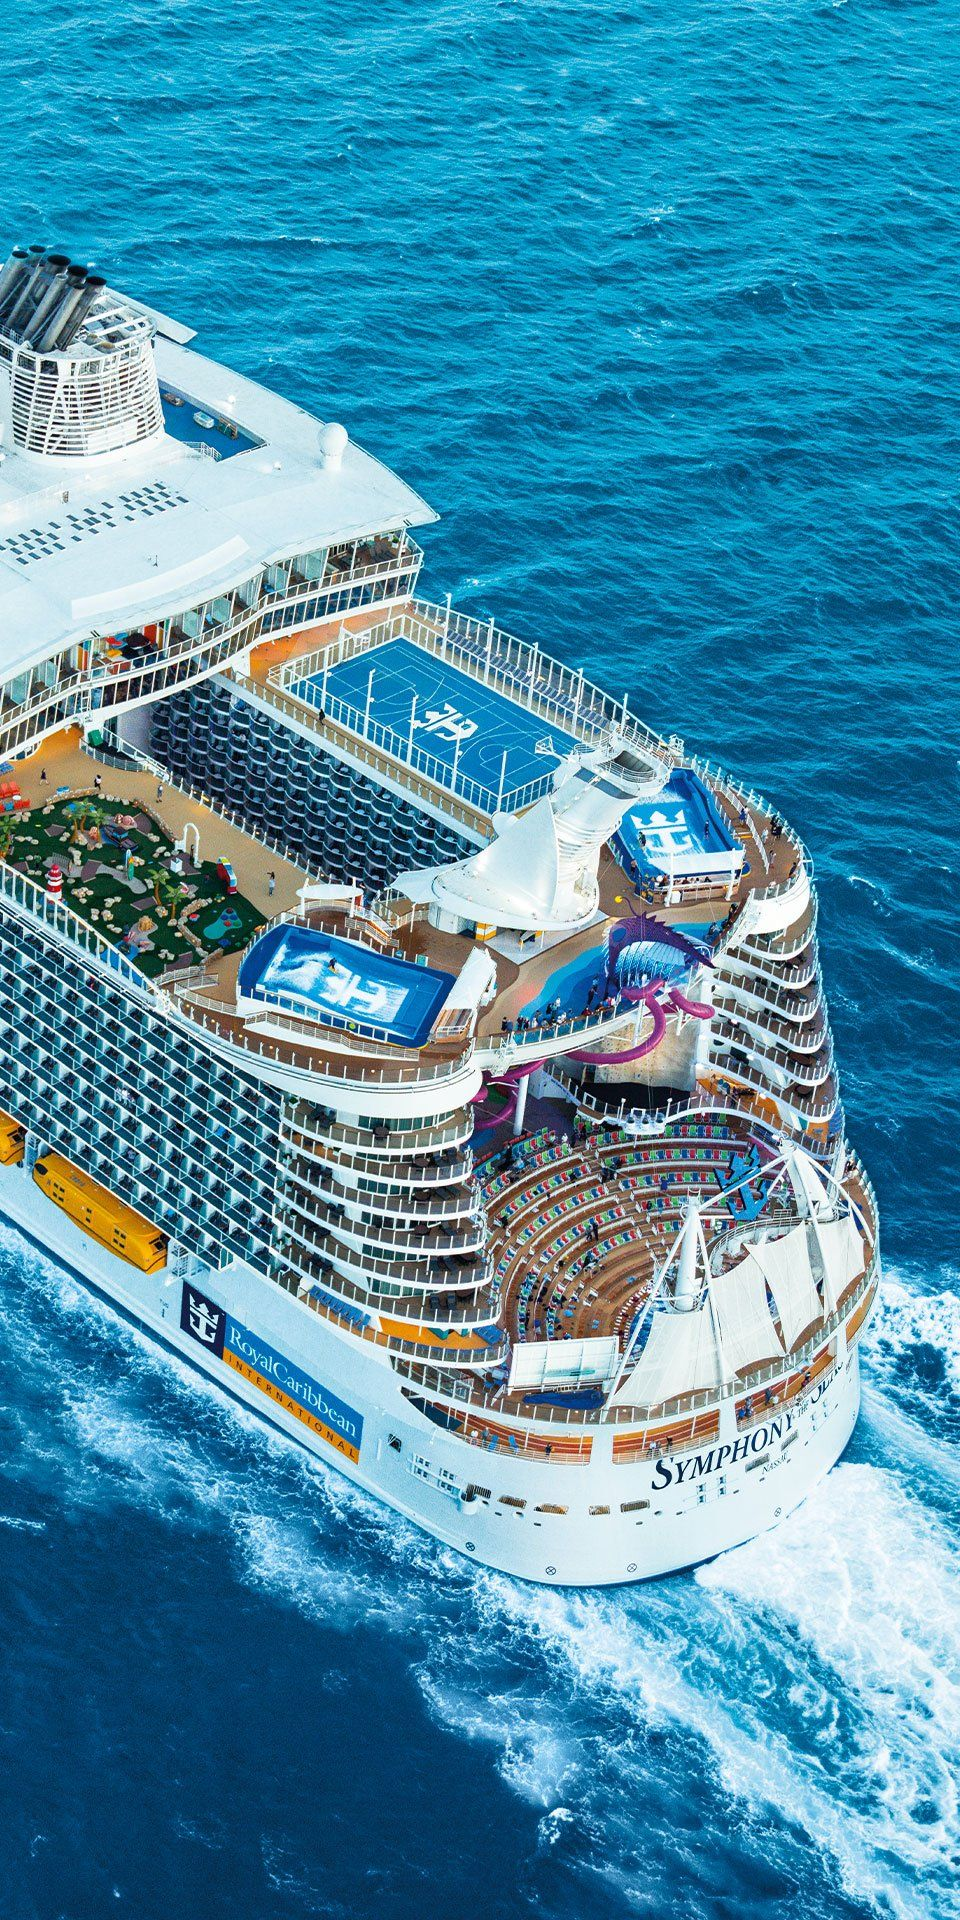 Symphony Of The Seas The Aft Is Where It S At Onboard The Newest Oasis Class Ship Slide Down 10 Stories Cruise Ship Symphony Of The Seas Biggest Cruise Ship